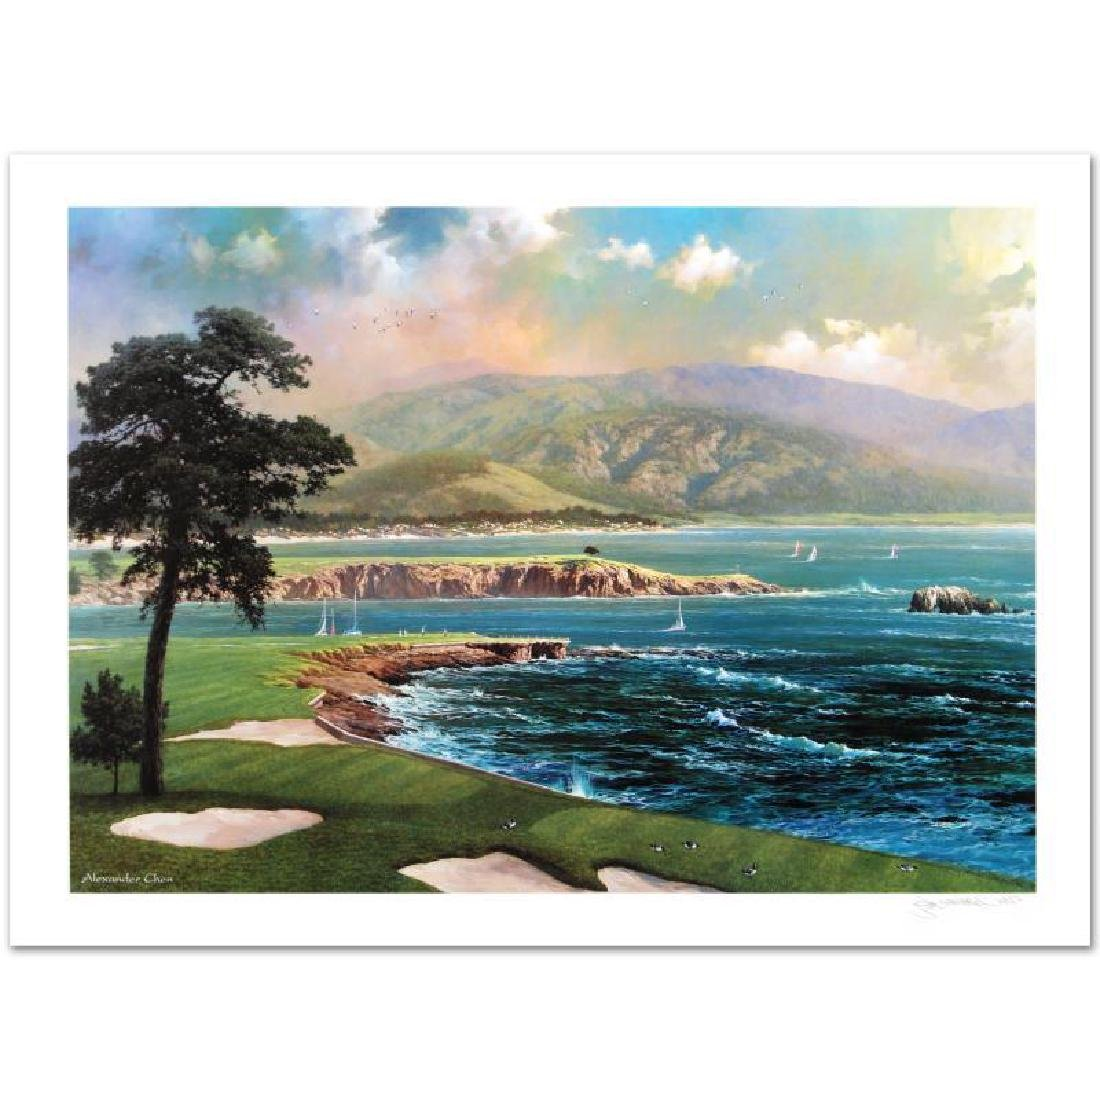 On a Clear Day Limited Edition Lithograph by Alexander